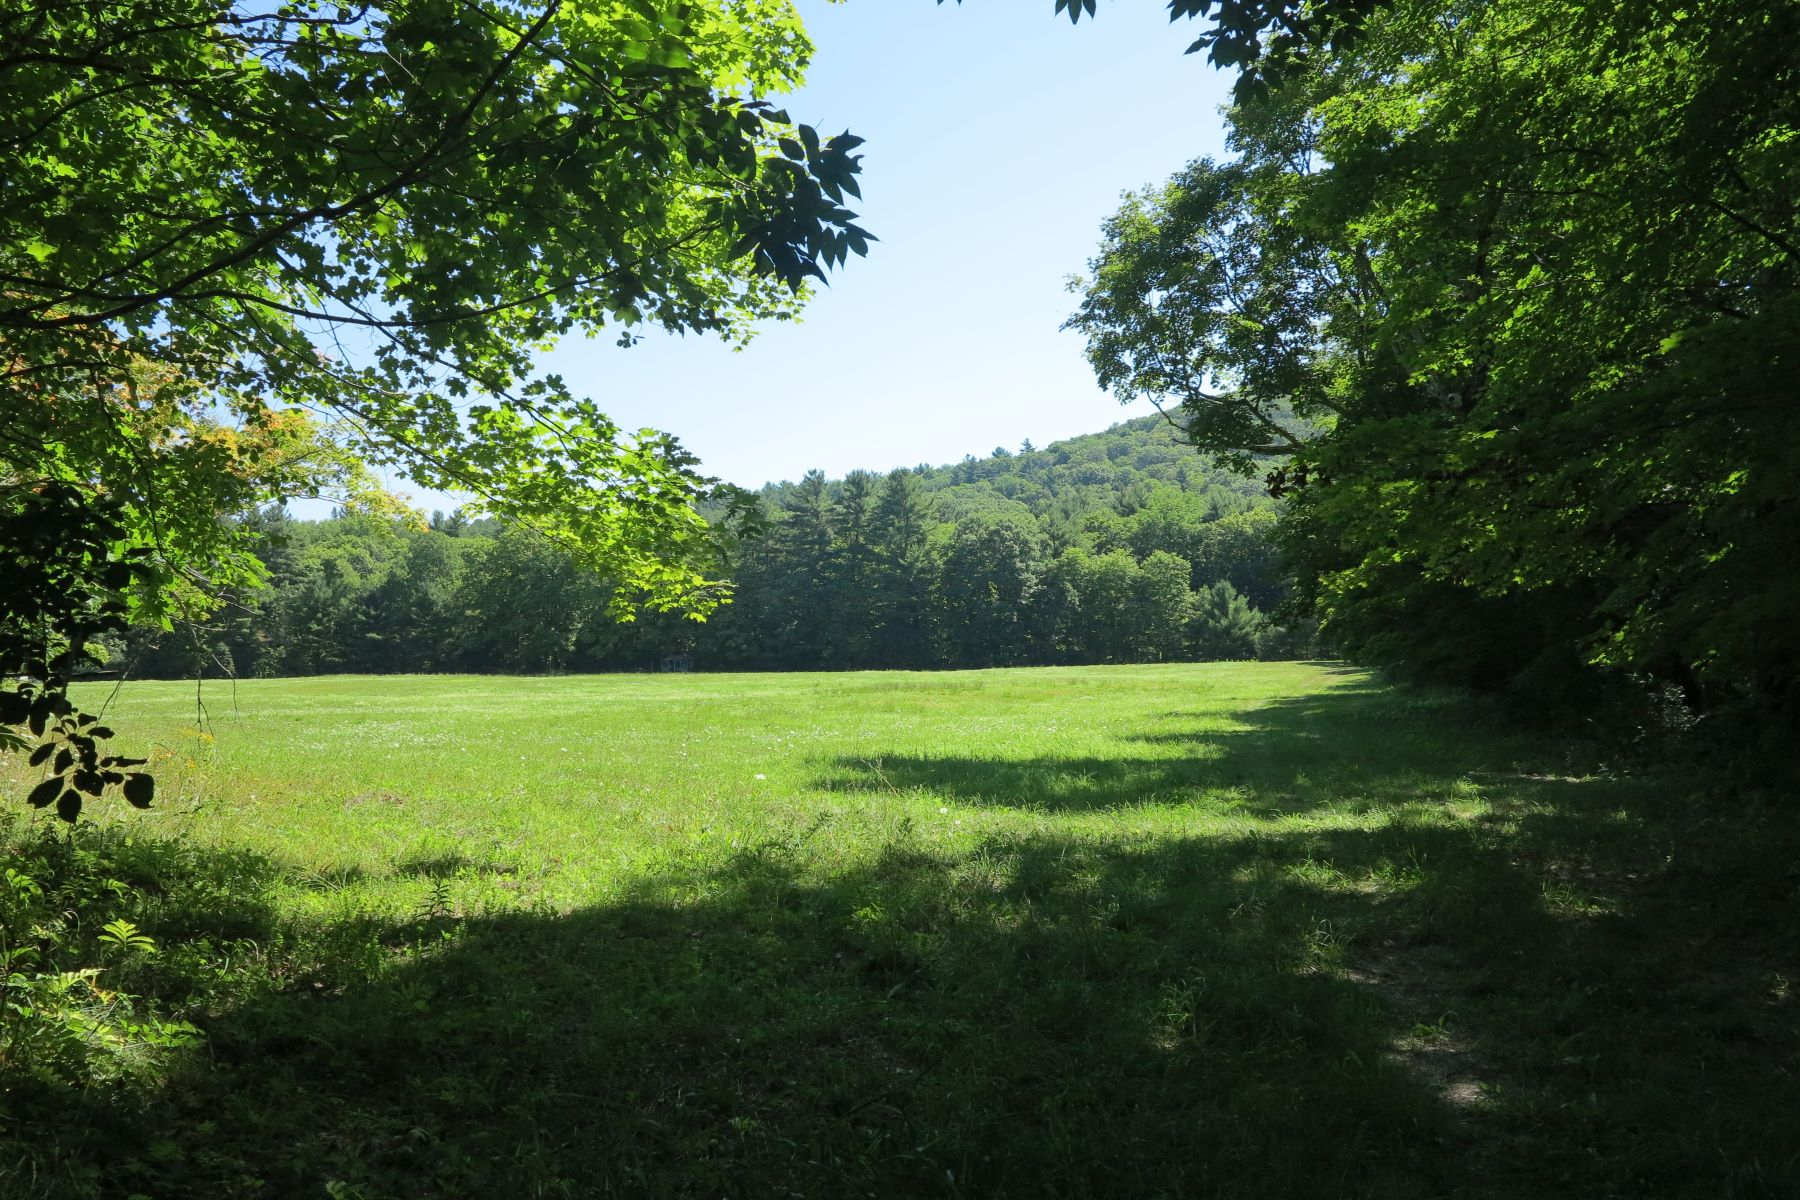 Land for Sale at Estate Parcel - 21.347 Acres with River Frontage and Meadow 106 New Marlboro-Southfield Rd New Marlborough, Massachusetts 01230 United States